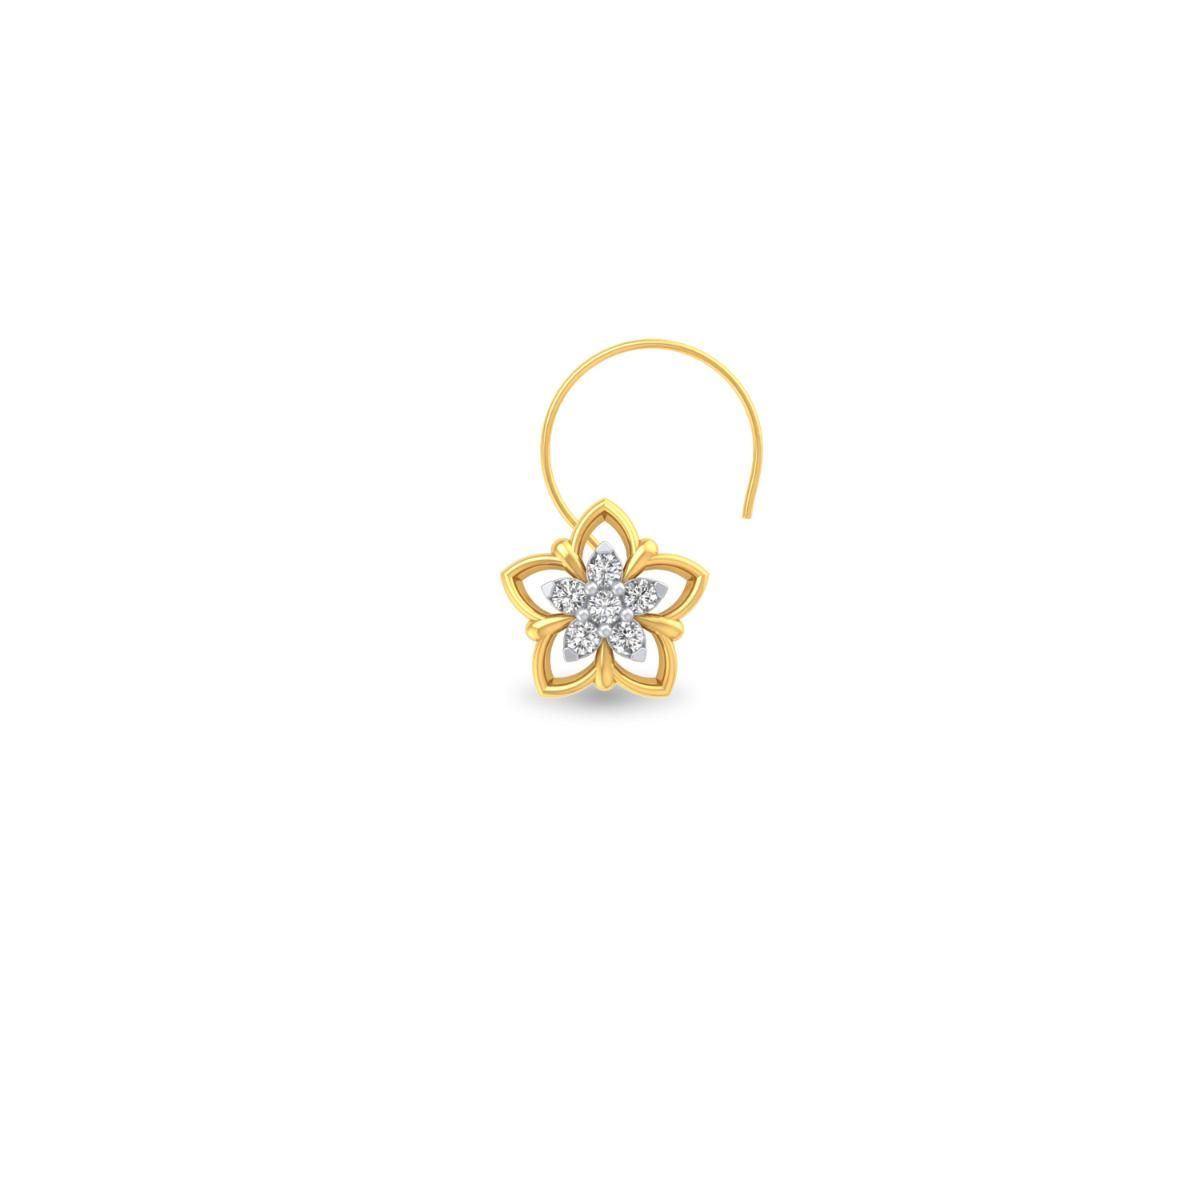 Joyce Diamond Nose Pin Makes Styling With Gold Nose Pin Online Much More Interesting Buy This Nose Pin To Stay Ahead Of Jewelry Online Shopping Jewelry Jewels